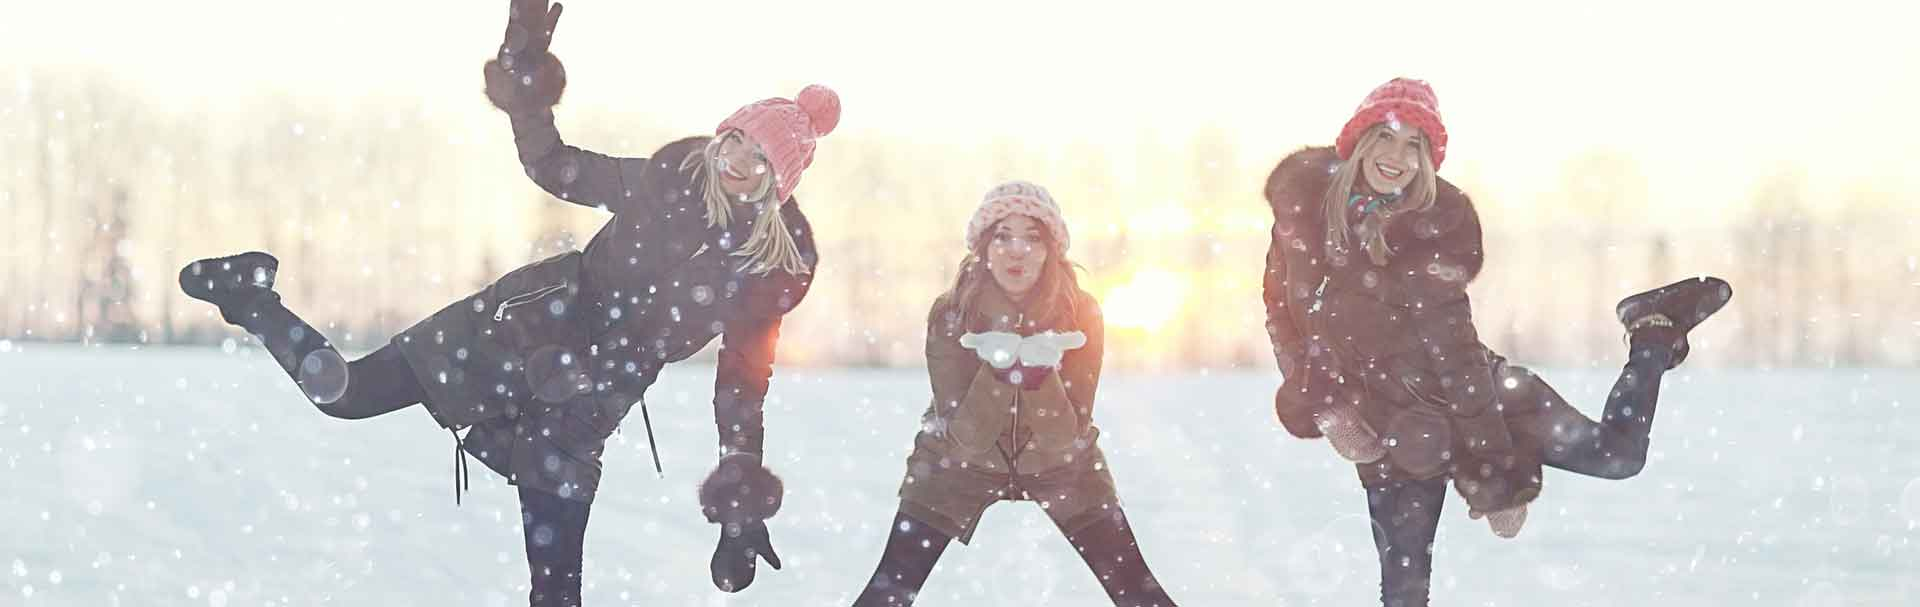 Students in Finland playing in the snow.